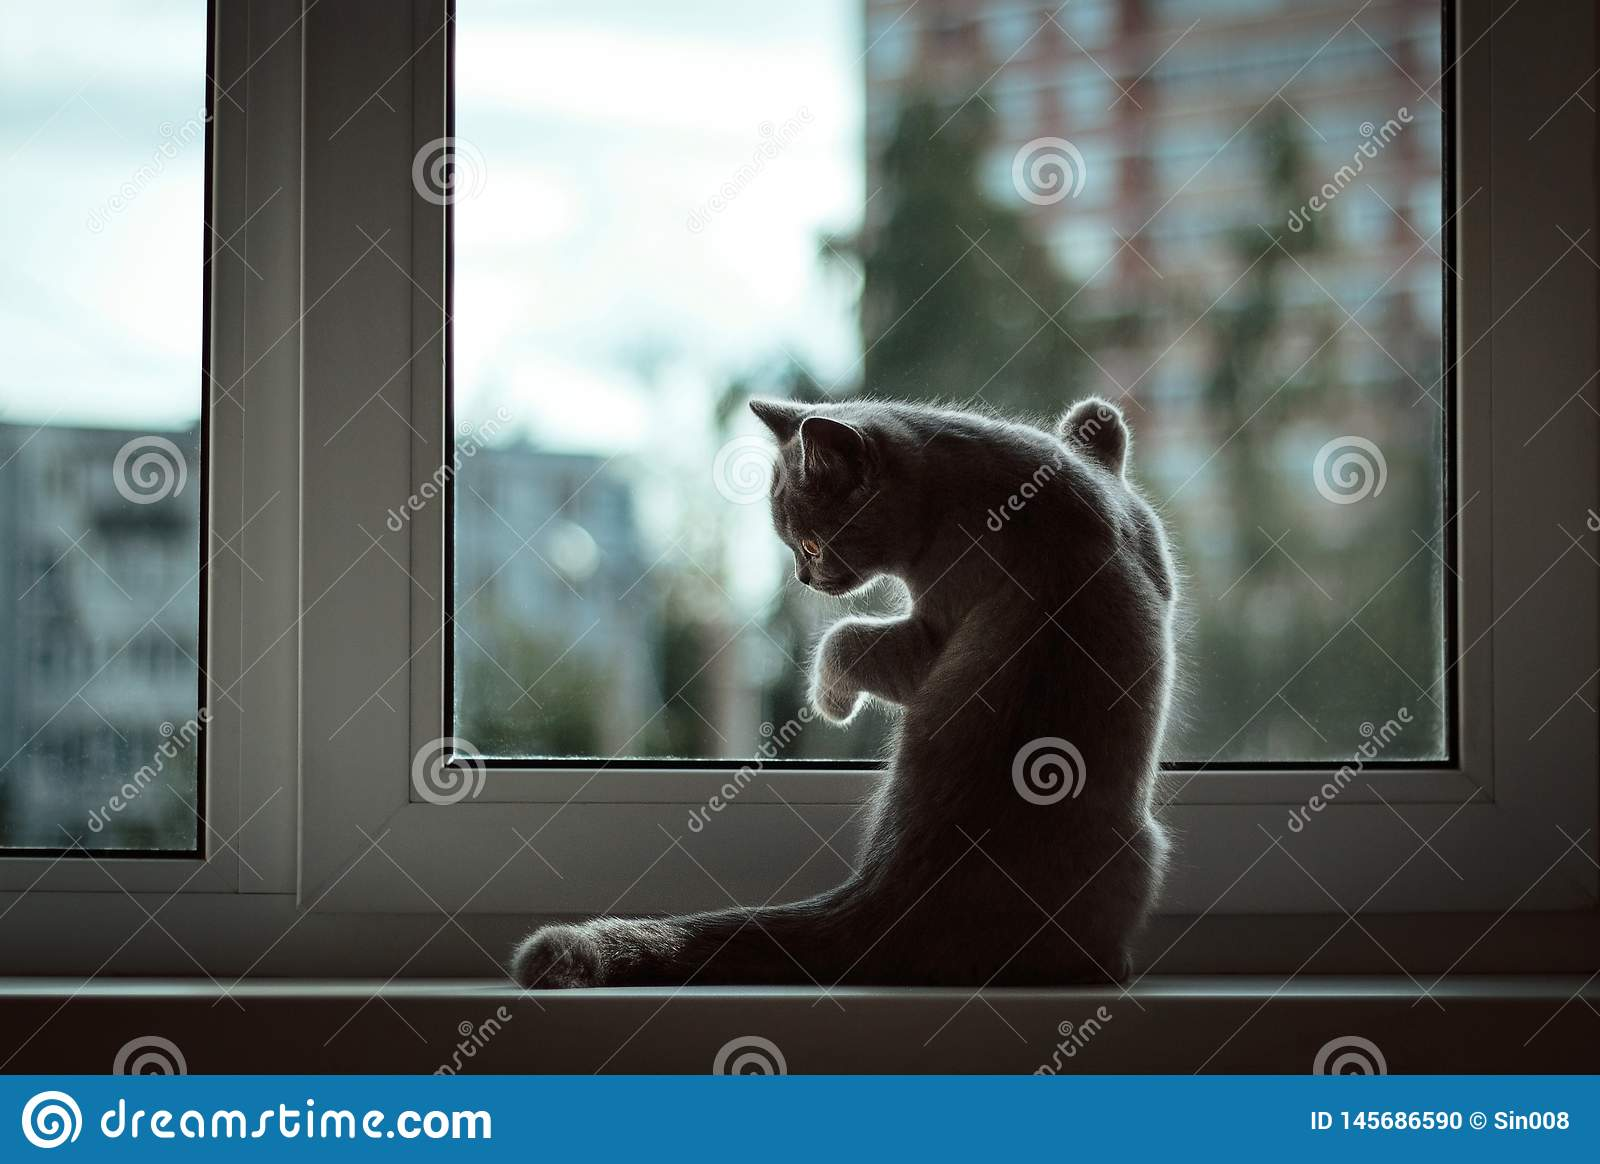 A small British kitten sitting at the window on the background of the evening city. Front legs rests against the glass